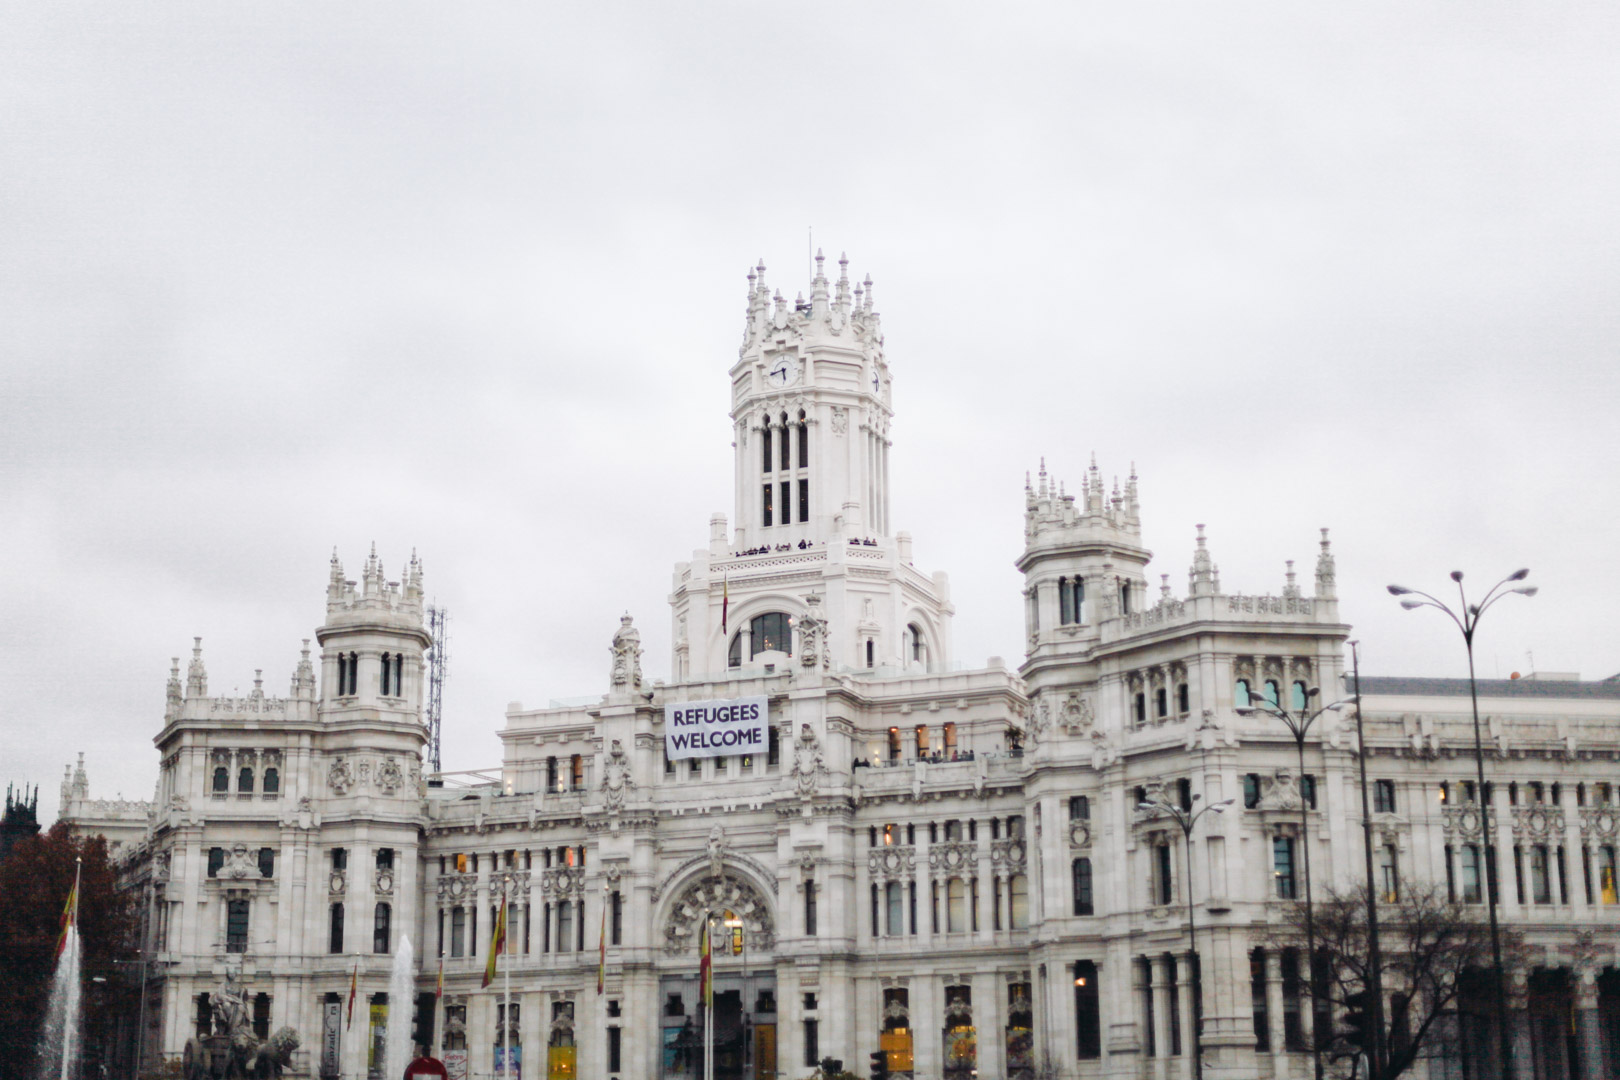 Palacio de Comunicaciones, now Madrid's City Hall, offers panoramic views of the city from this Gothic palace.